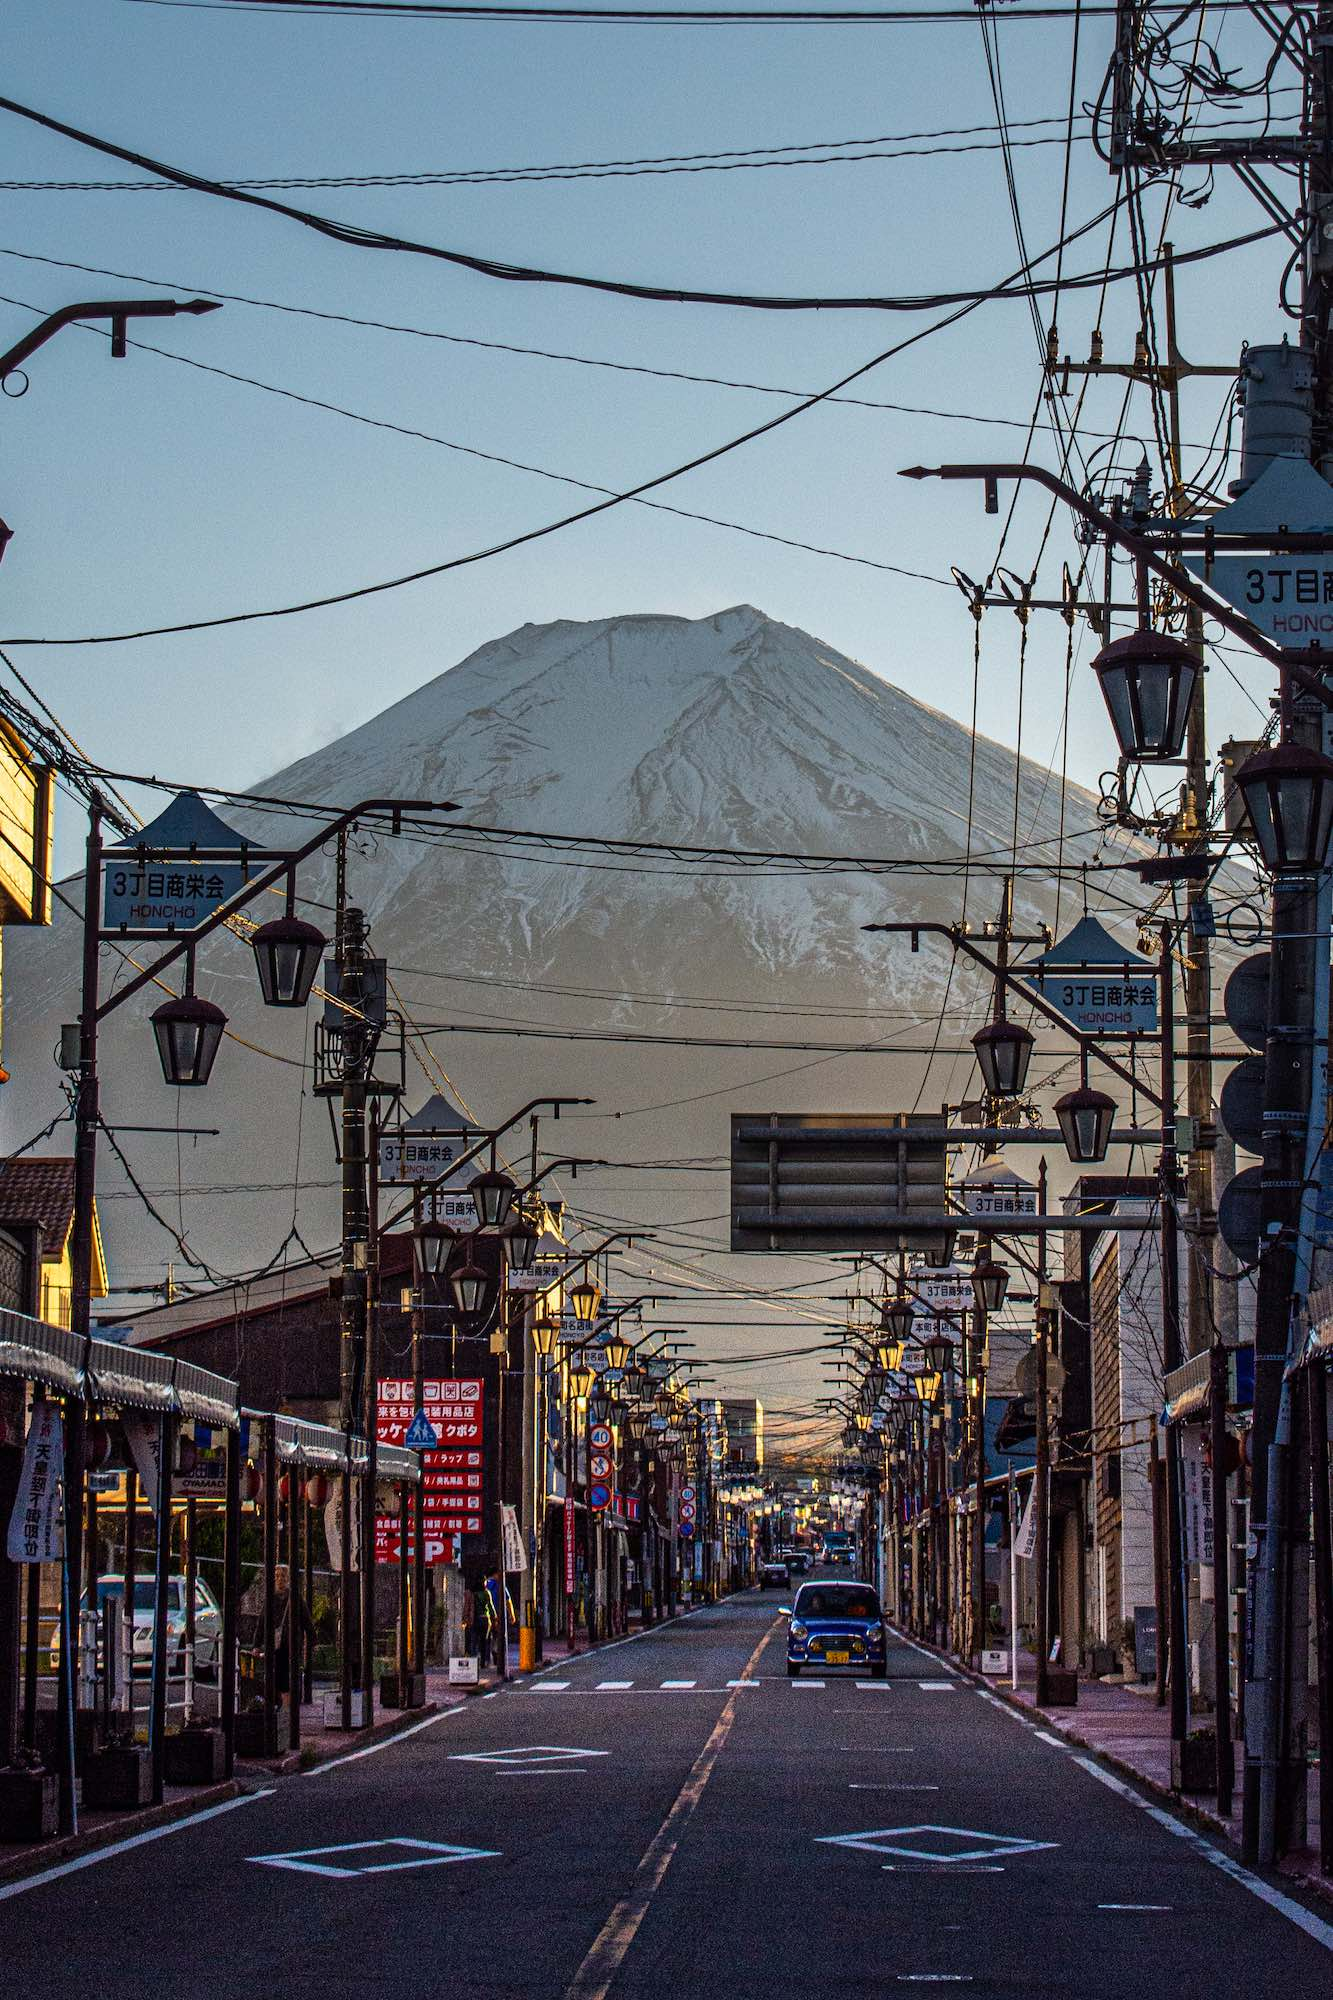 Road and street leading to Mt. Fuji, Japan